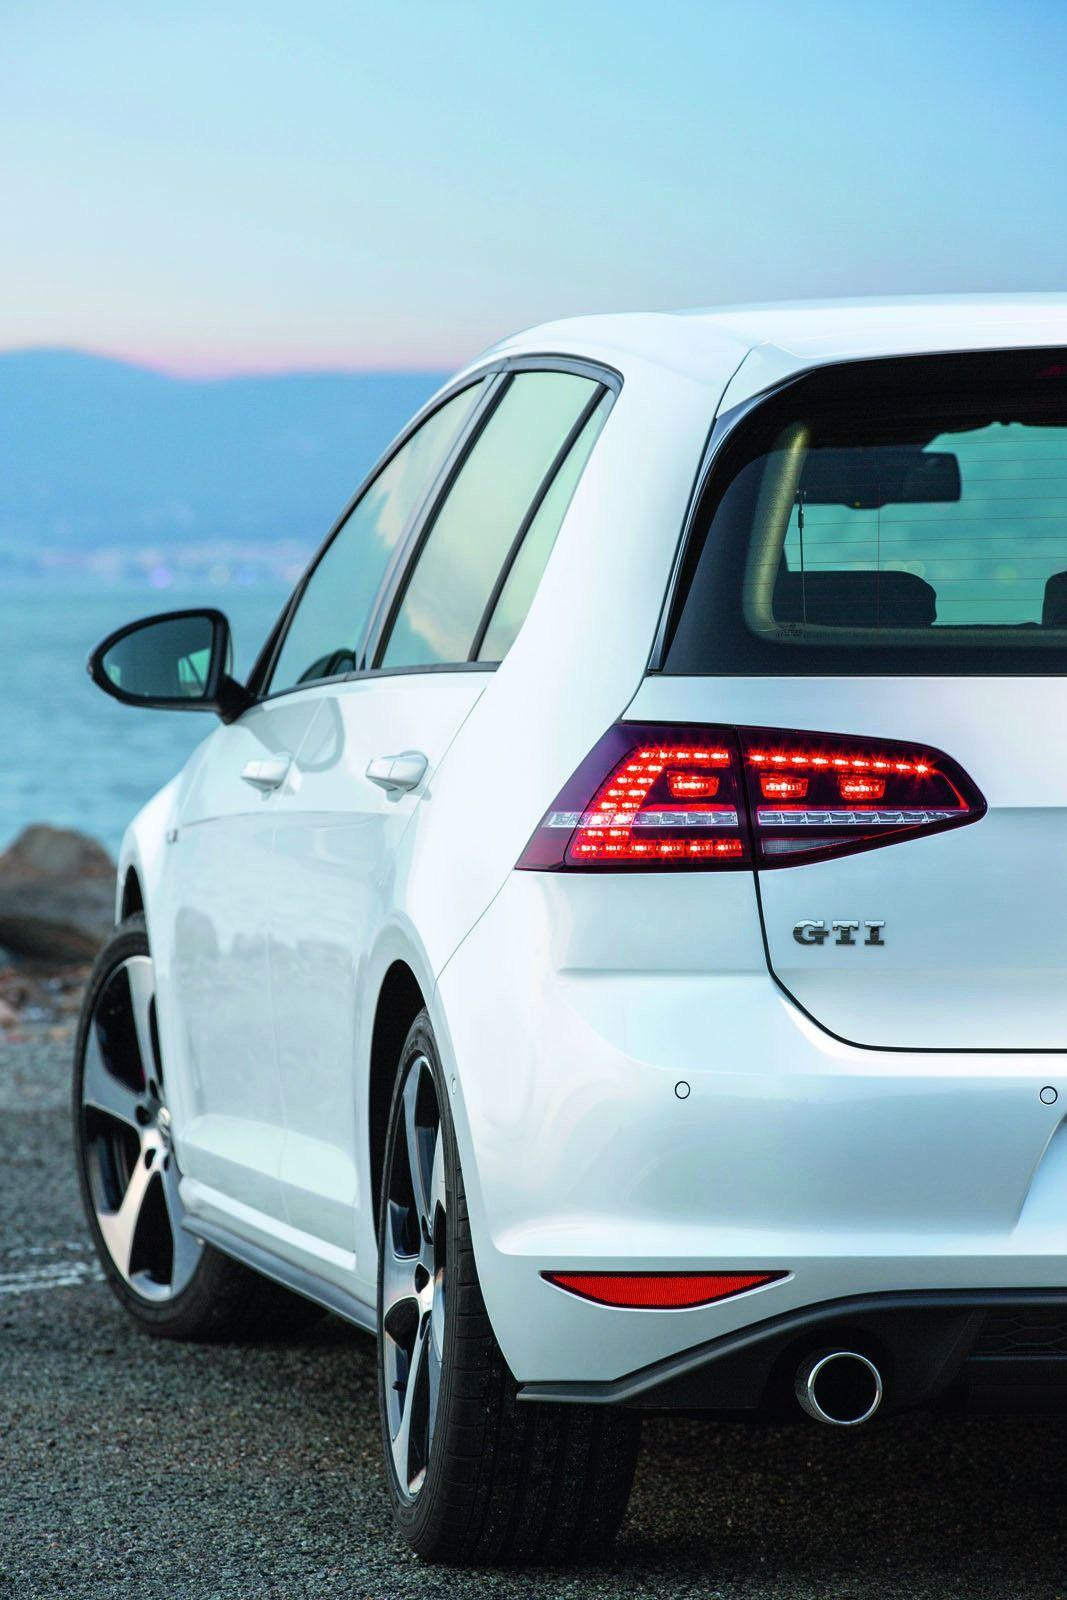 Volkswagen Golf GTI Mk7 2013 photo 97104 pictures at high resolution